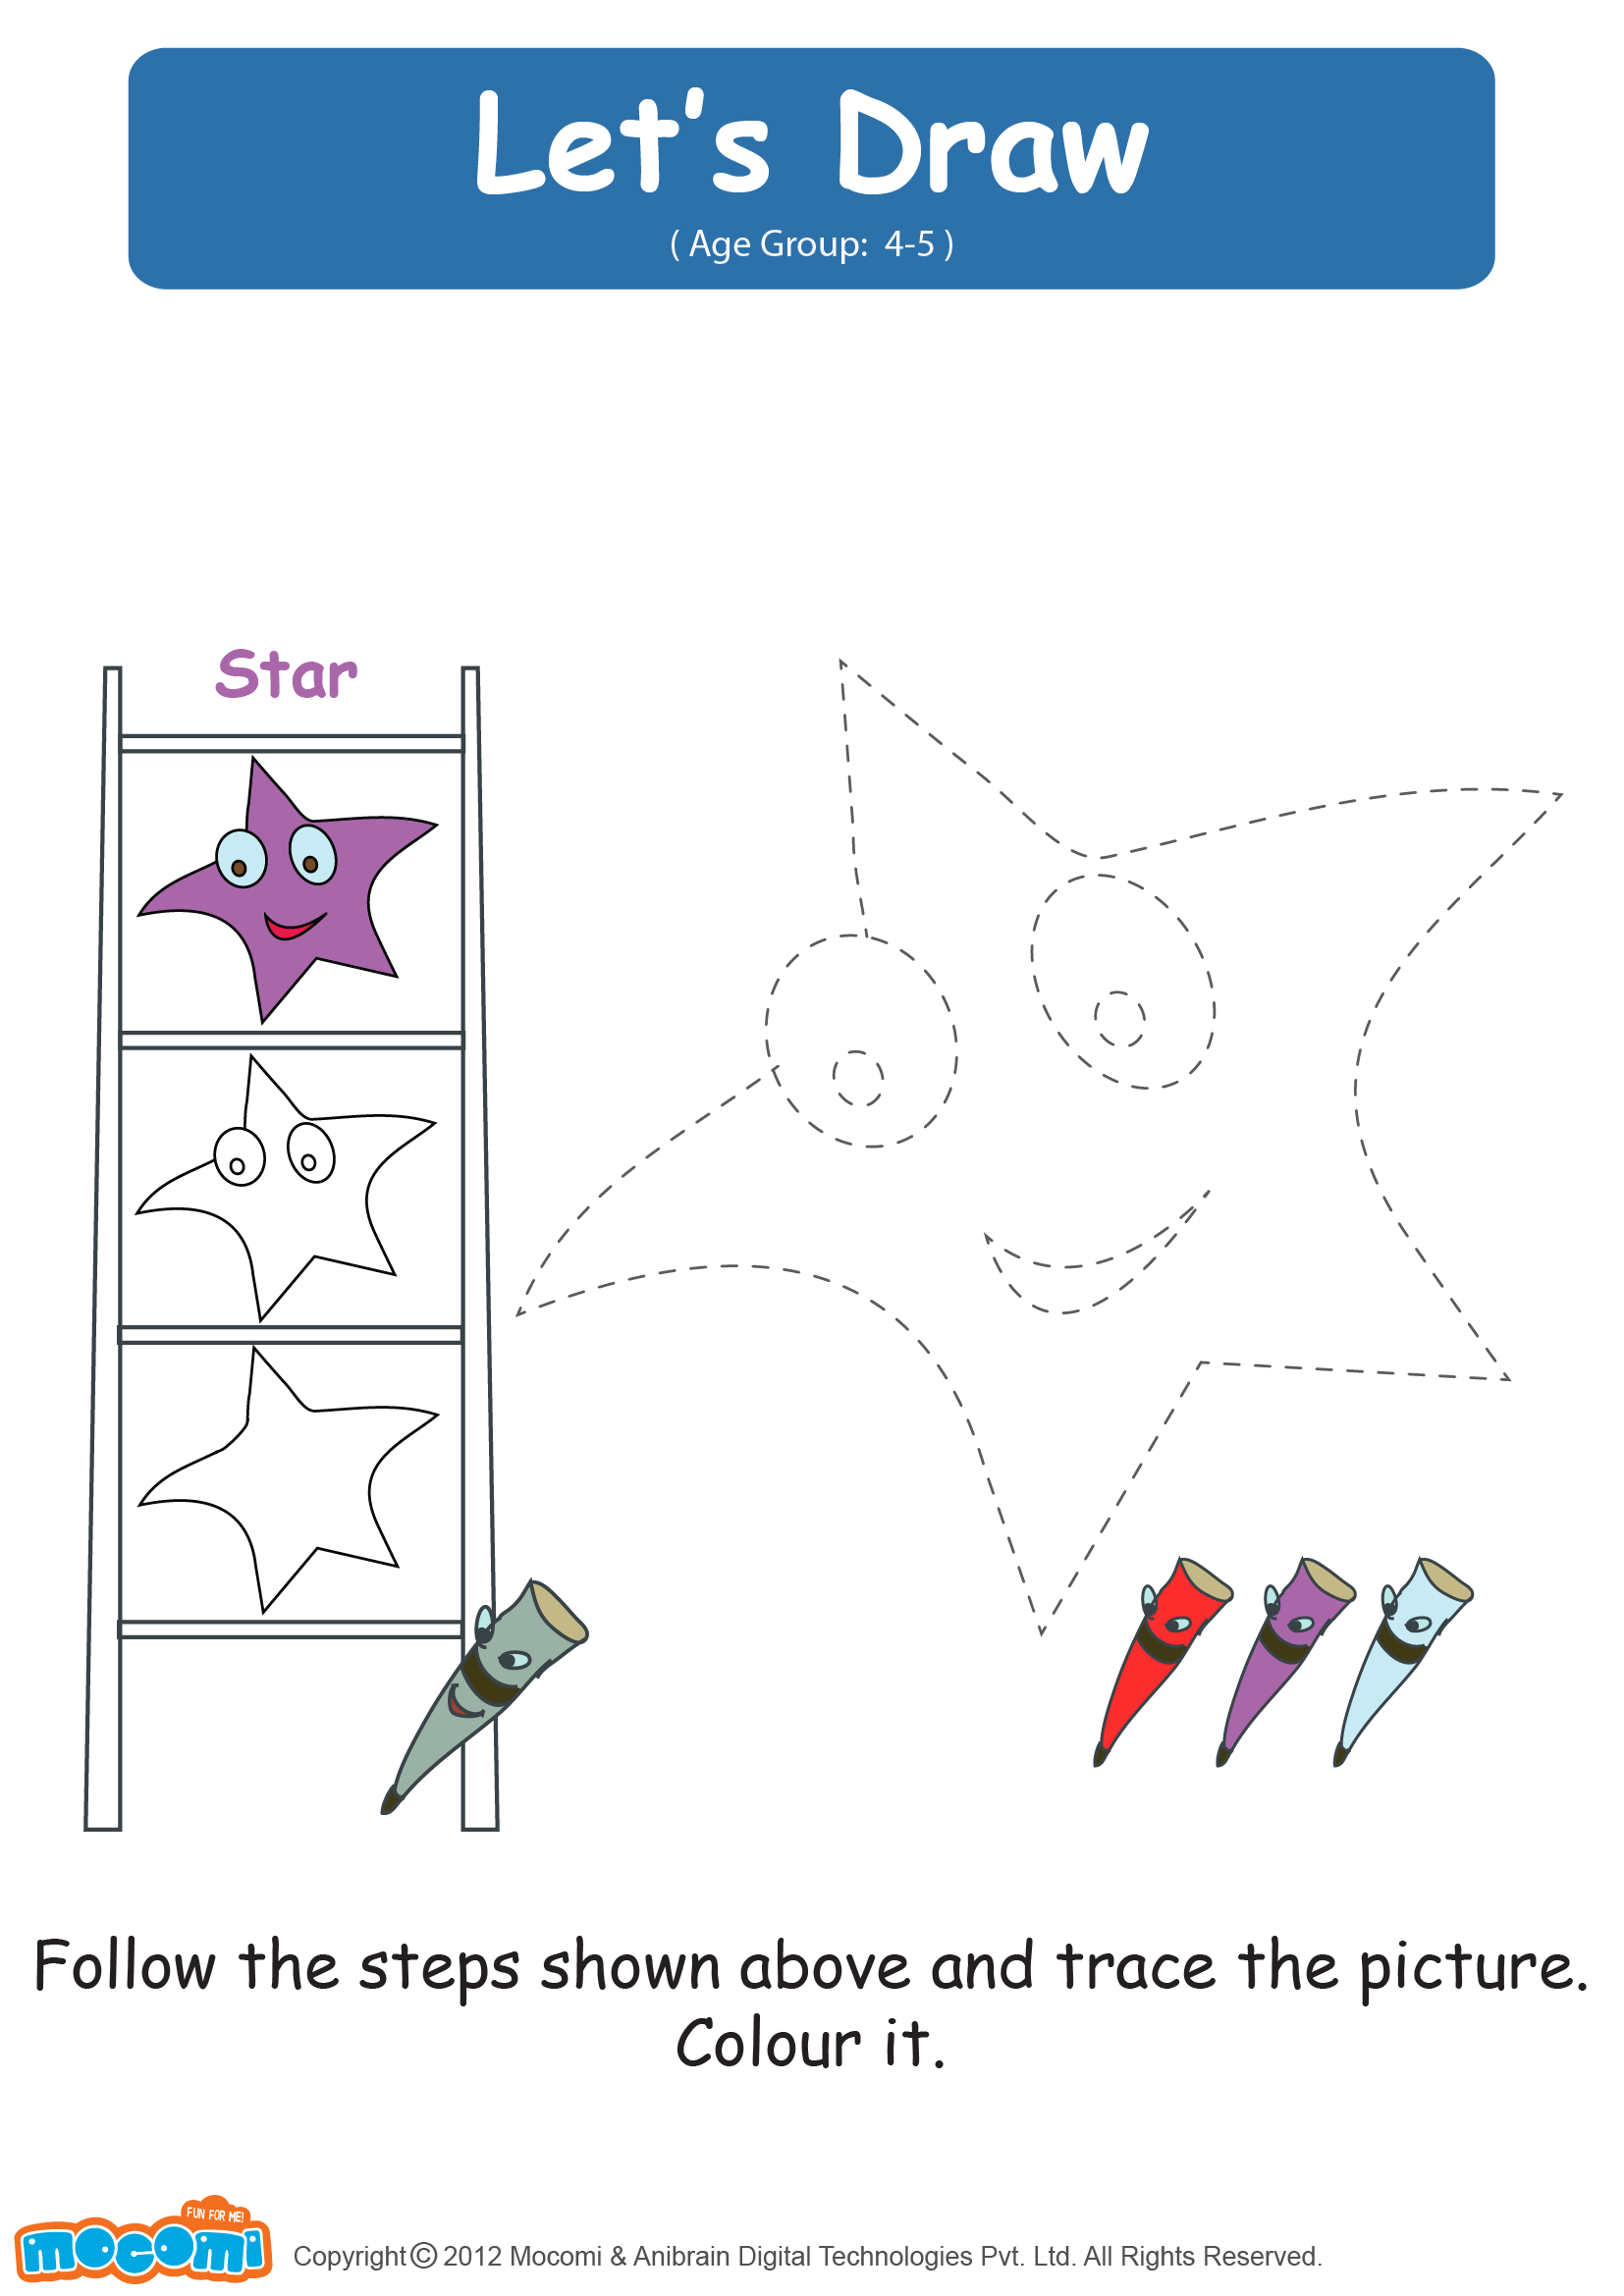 Let's Draw a Star